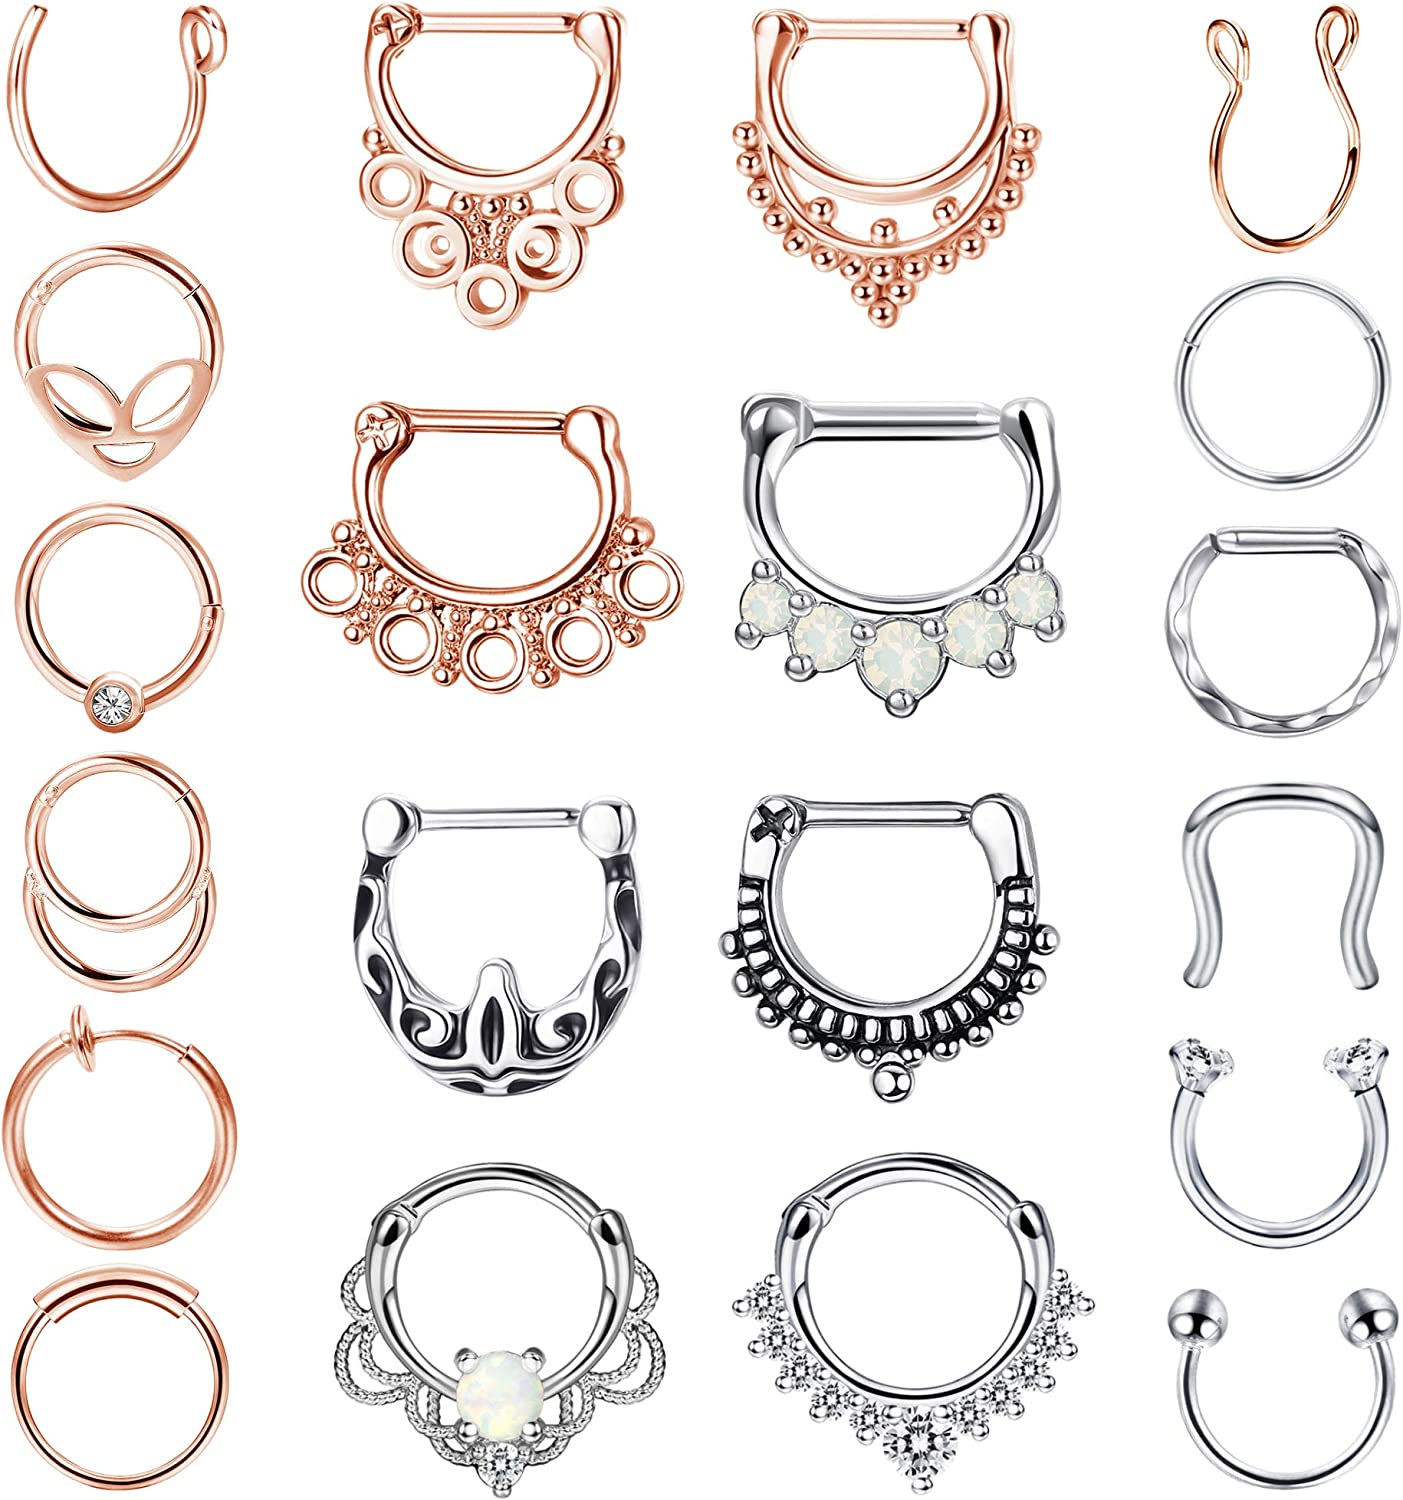 LOYALLOOK 20PCS 16G Stainless Steel Septum Clicker Hoop Nose Rings Horseshoe Lip Tragus Cartilage Ring Septum Body Piercing Jewelry for Women Men